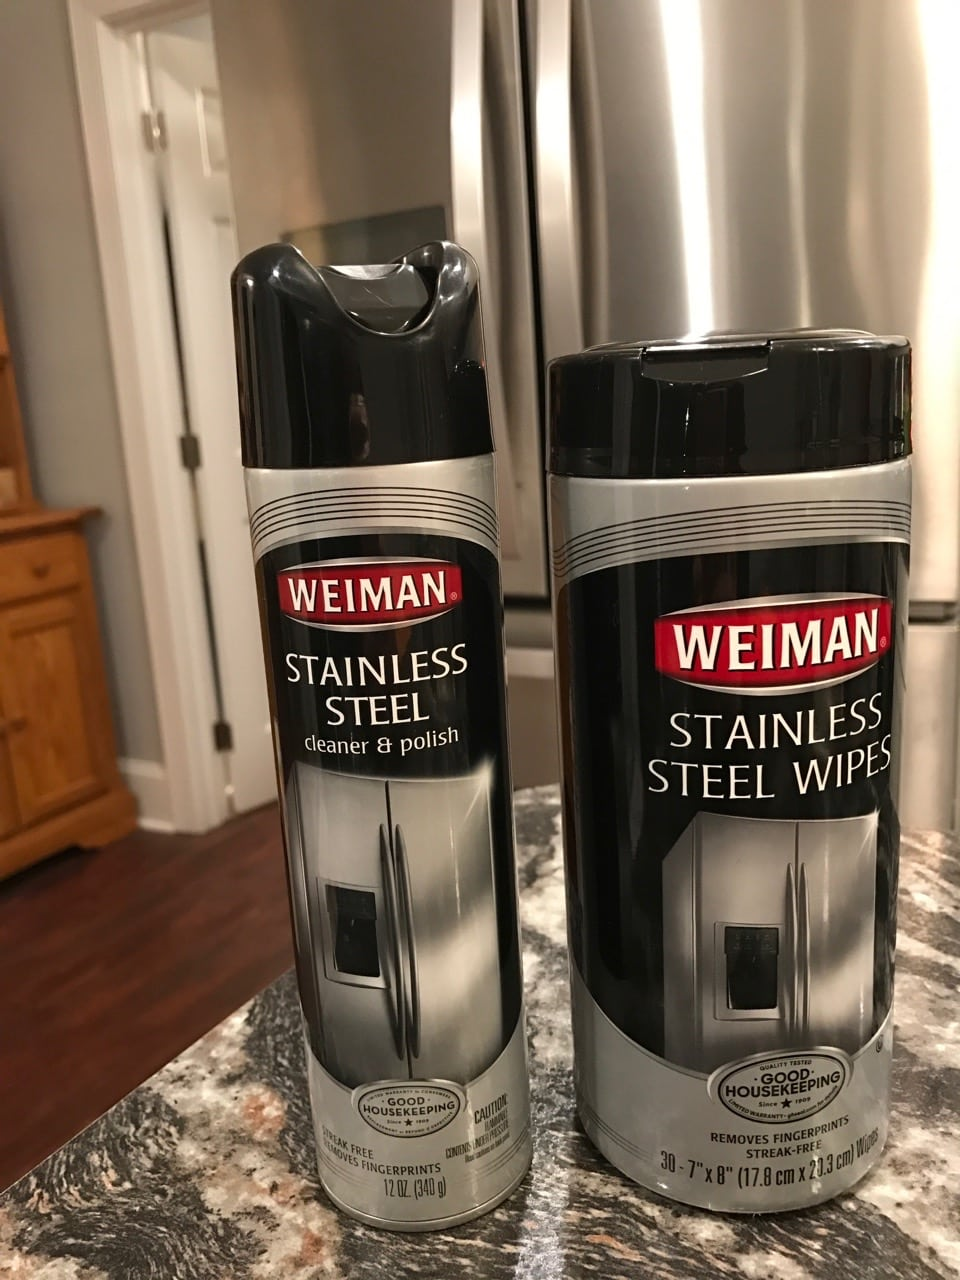 Weiman Stainless Steel polish